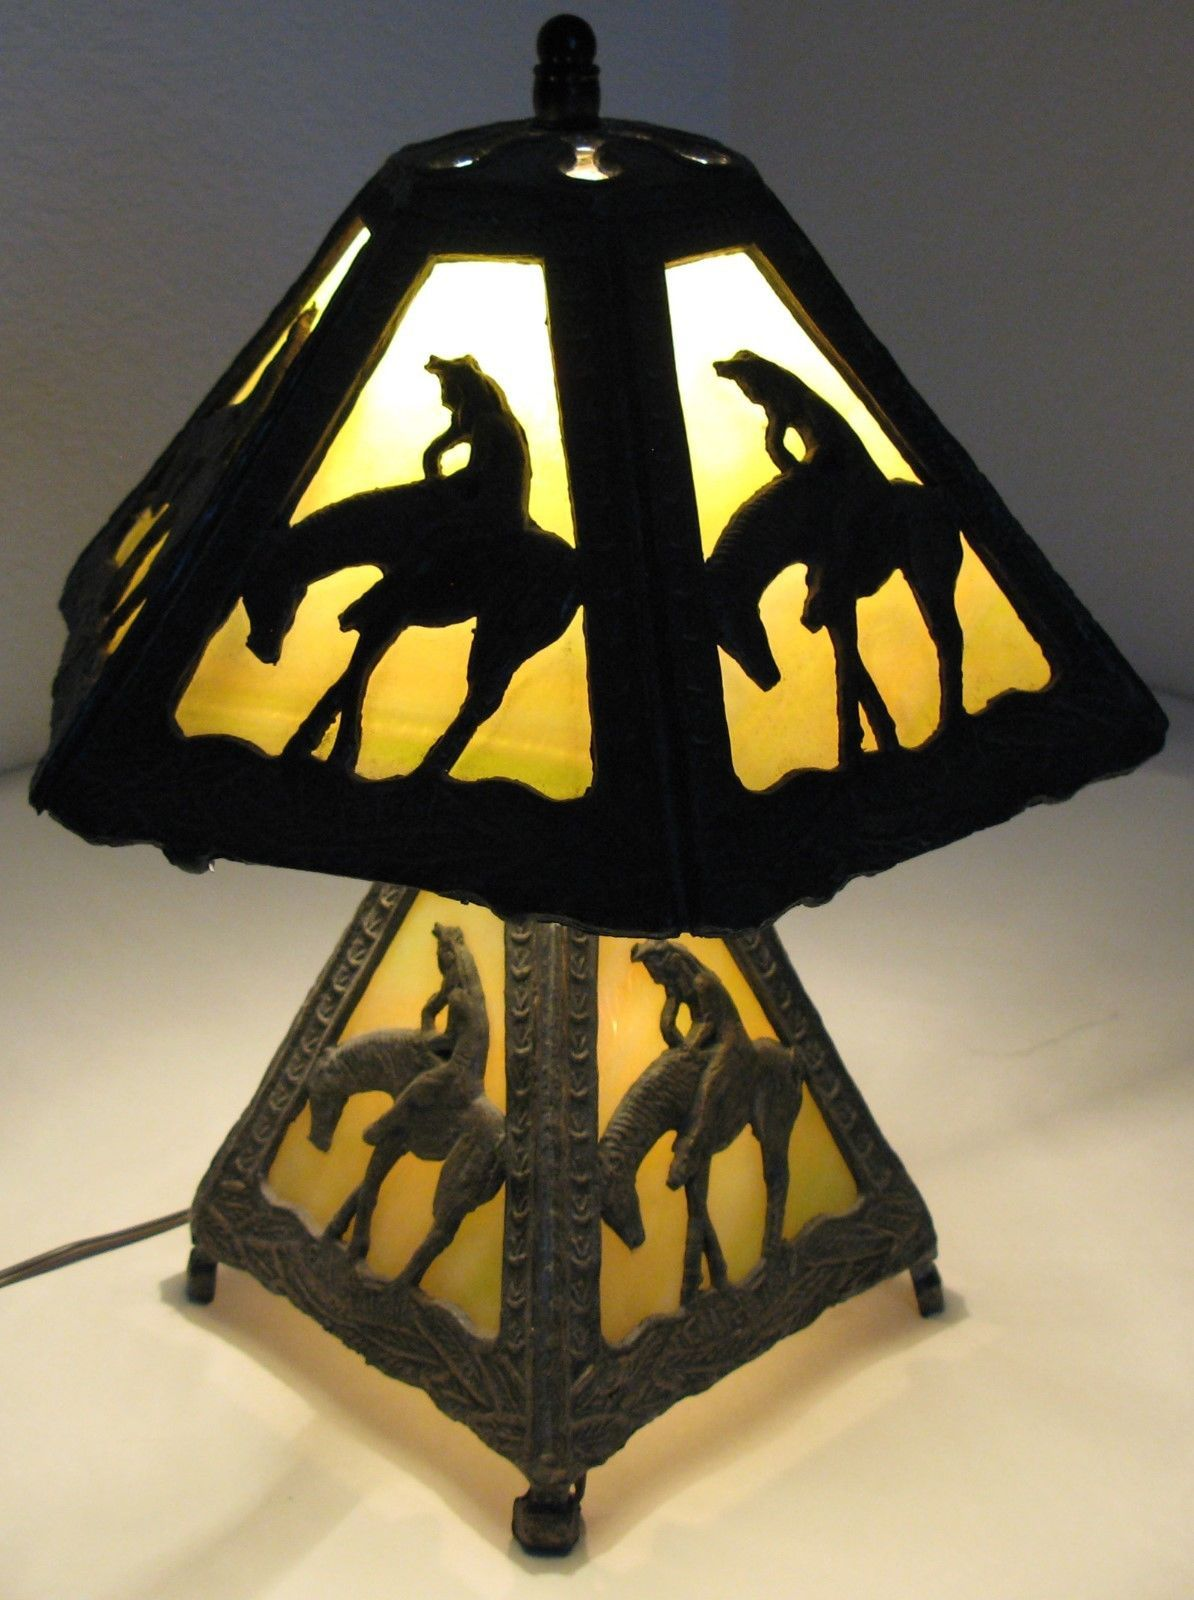 Antique leaded stained slag glass table lamp indian end of the trail antique leaded stained slag glass table lamp indian end of the trail unusual ebay mozeypictures Choice Image